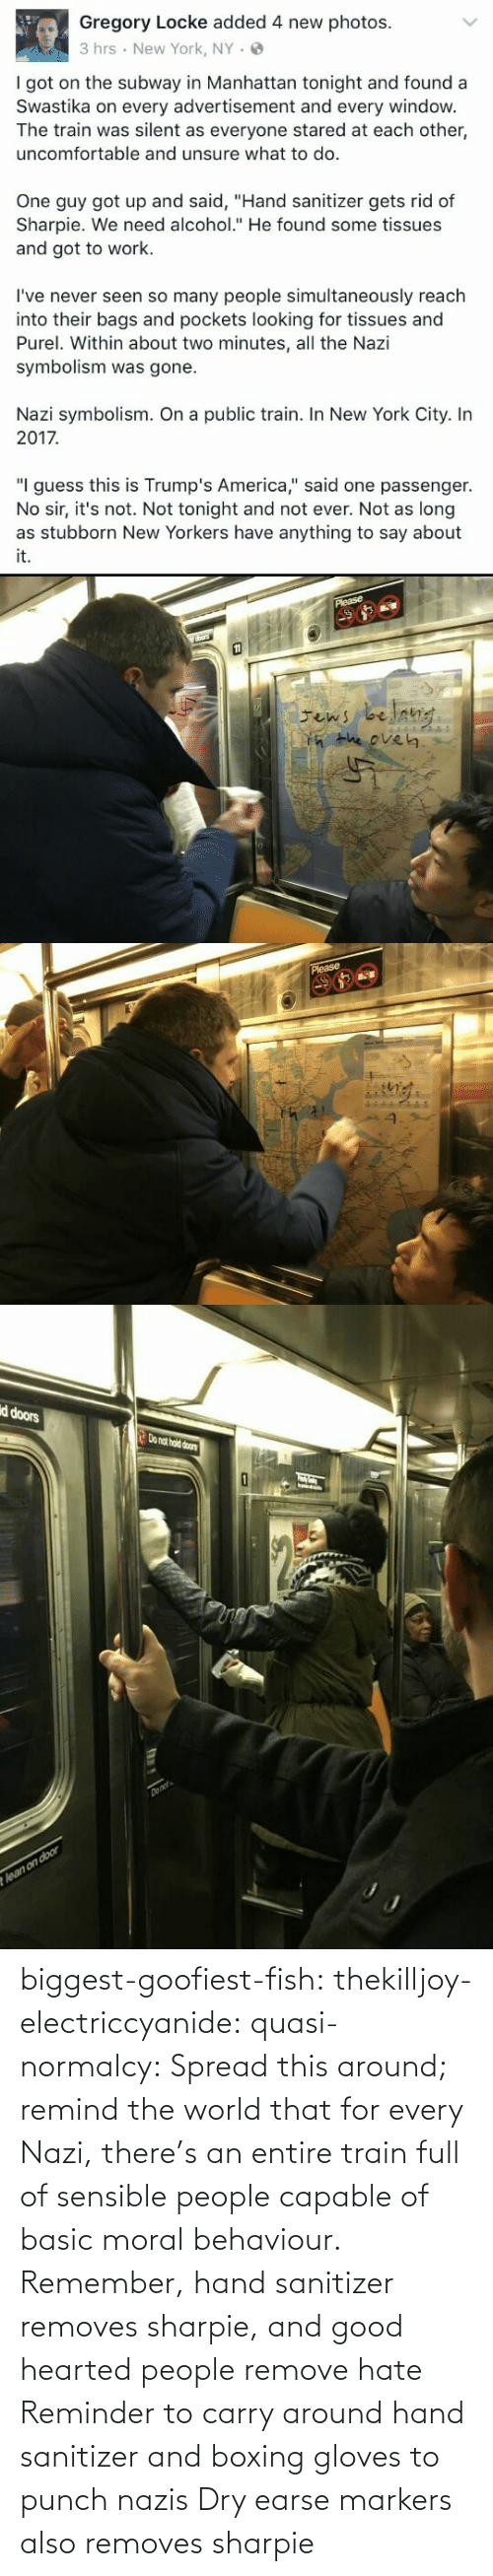 """in-new-york-city: Gregory Locke added 4 new photos.  3 hrs New York, NY.  I got on the subway in Manhattan tonight and found a  Swastika on every advertisement and every windovw  The train was silent as everyone stared at each other,  uncomfortable and unsure what to do.  One guy got up and said, """"Hand sanitizer gets rid of  Sharpie. We need alcohol."""" He found some tissues  and got to work.  I've never seen so many people simultaneously reach  into their bags and pockets looking for tissues and  Purel. Within about two minutes, all the Nazi  symbolism was gone.  Nazi symbolism. On a public train. In New York City. In  2017  """"I guess this is Trump's America,"""" said one passenger.  No sir, it's not. Not tonight and not ever. Not as long  it.   He eve㎏   d doors  o nat hold doors biggest-goofiest-fish:  thekilljoy-electriccyanide:  quasi-normalcy: Spread this around; remind the world that for every Nazi, there's an entire train full of sensible people capable of basic moral behaviour.  Remember, hand sanitizer removes sharpie, and good hearted people remove hate   Reminder to carry around hand sanitizer and boxing gloves to punch nazis    Dry earse markers also removes sharpie"""